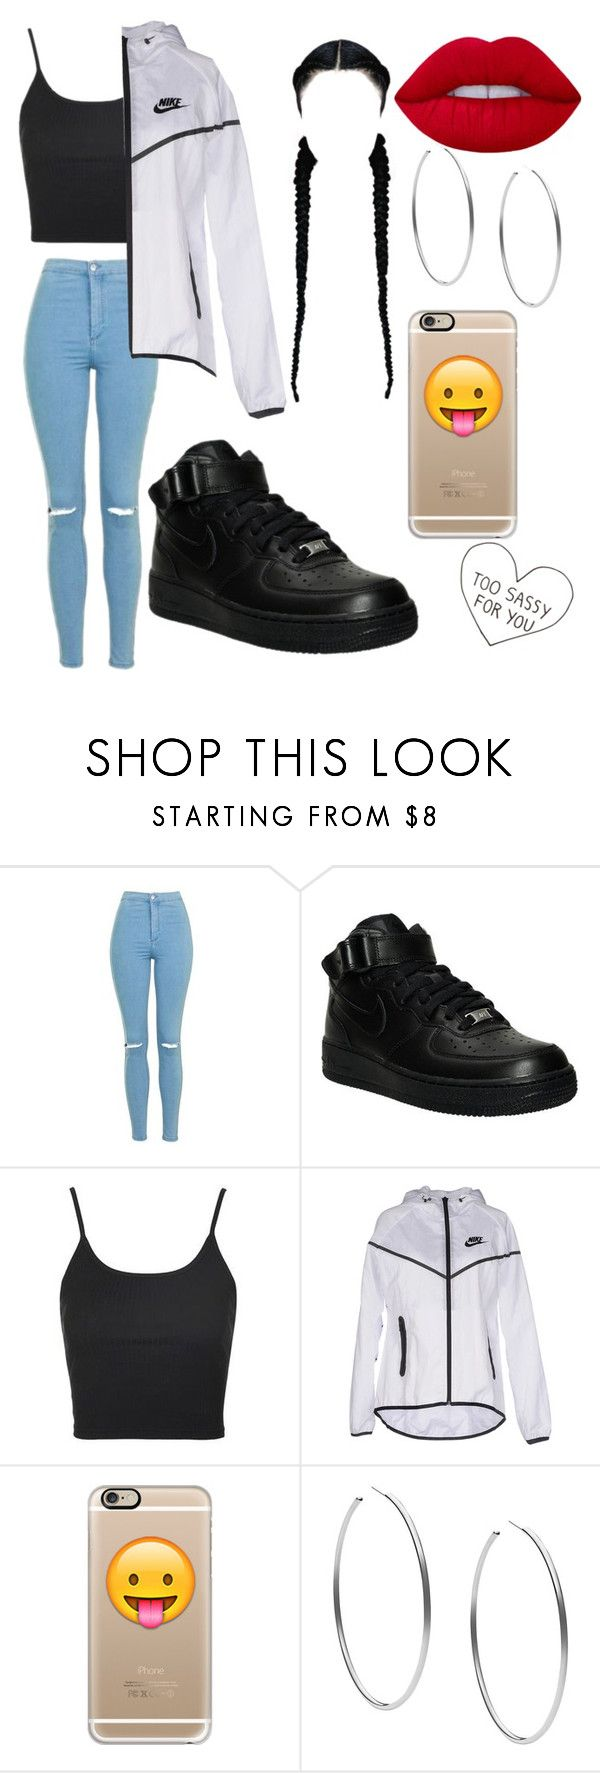 """Untitled #189"" by lovealysah2 ❤ liked on Polyvore featuring Topshop, NIKE, Casetify, Michael Kors and Lime Crime"